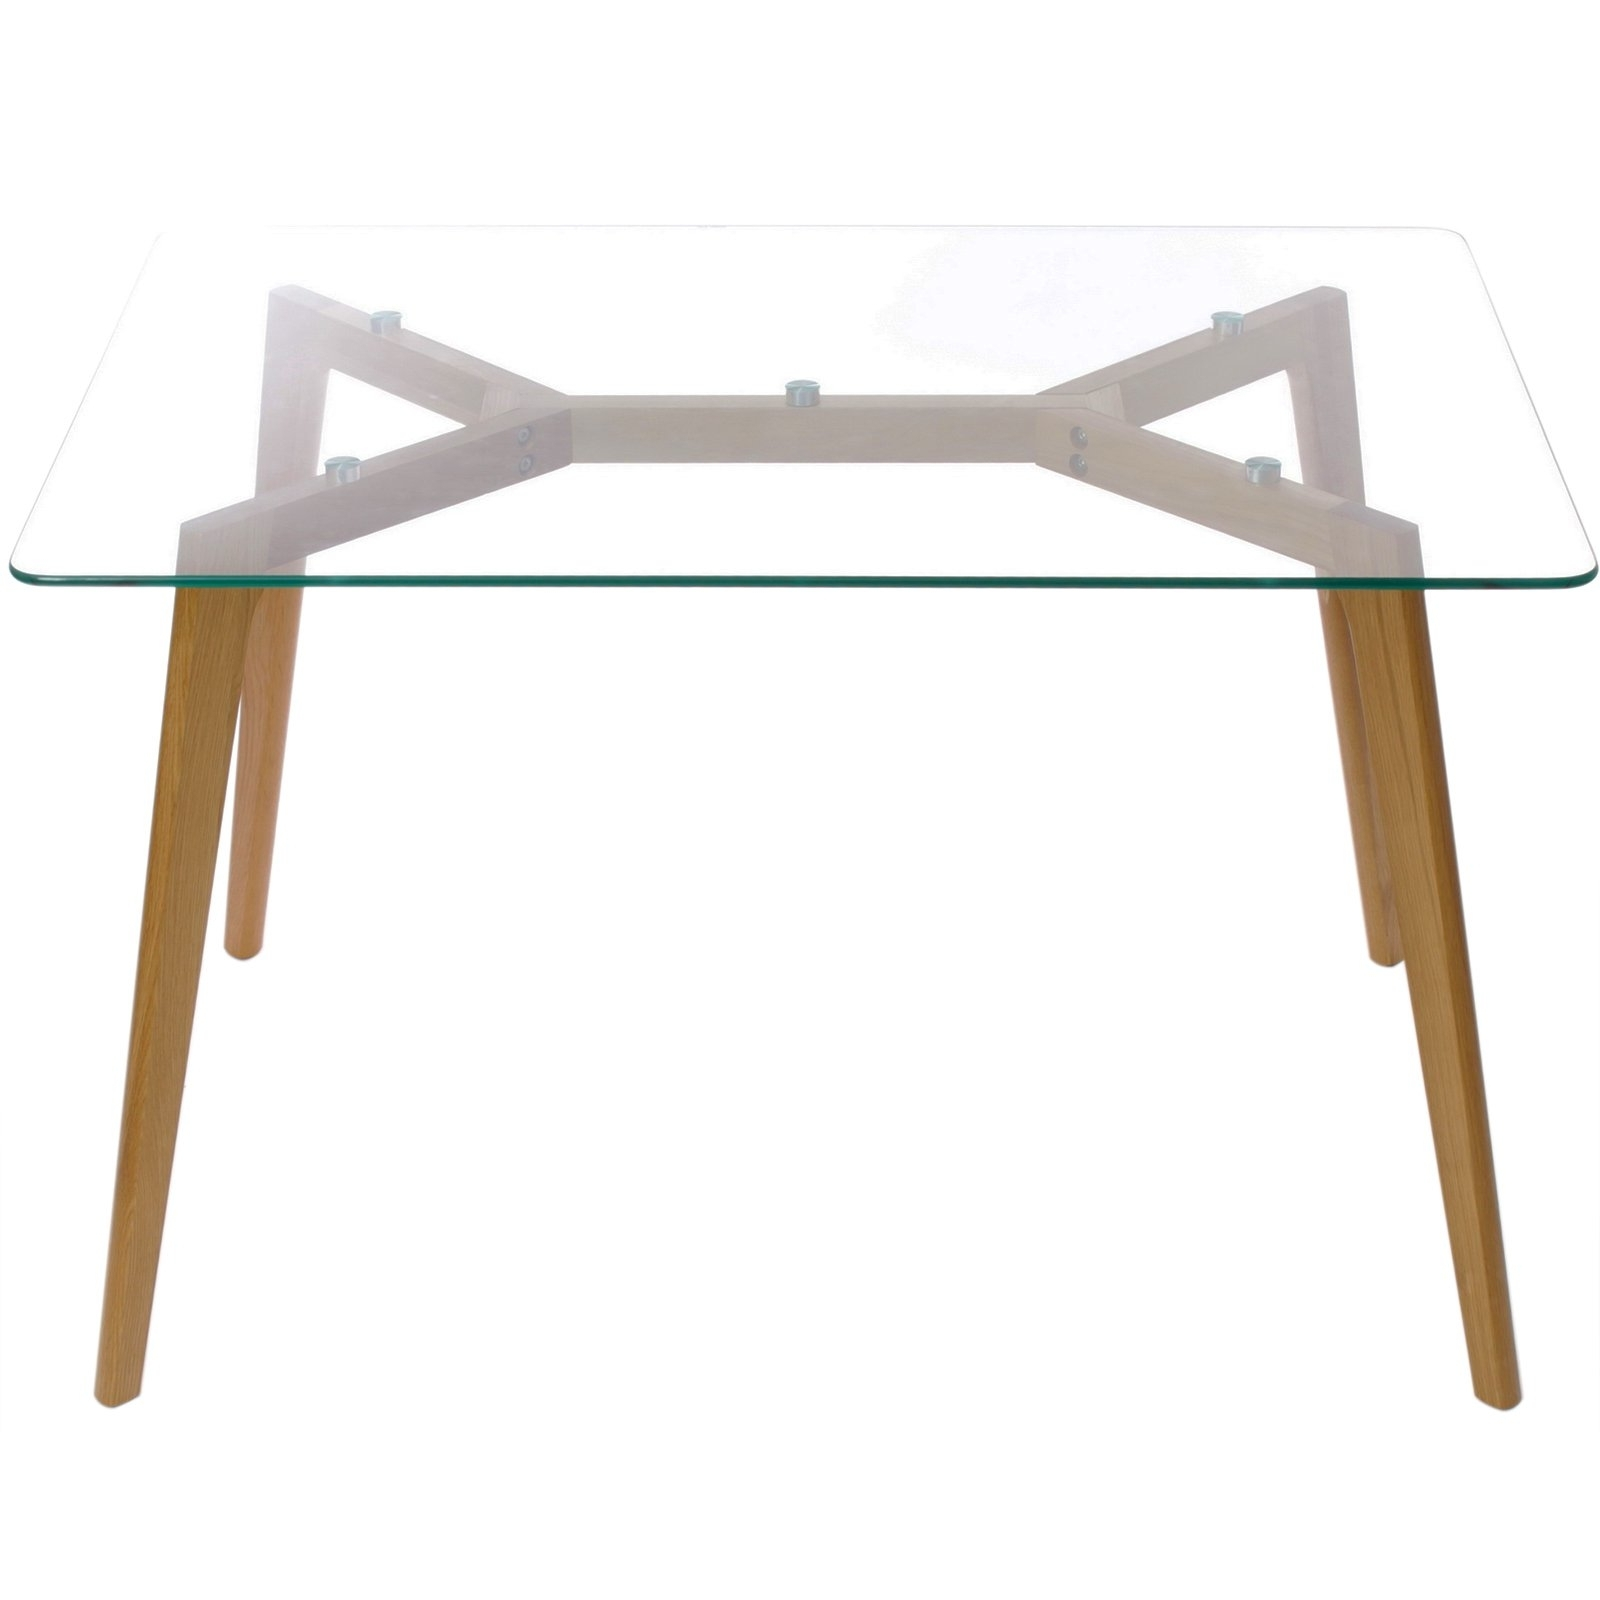 Favorite Charles Jacobs Glass Dining Table With Solid Wood Oak Legs – Choice Intended For Glass Dining Tables With Oak Legs (View 25 of 25)